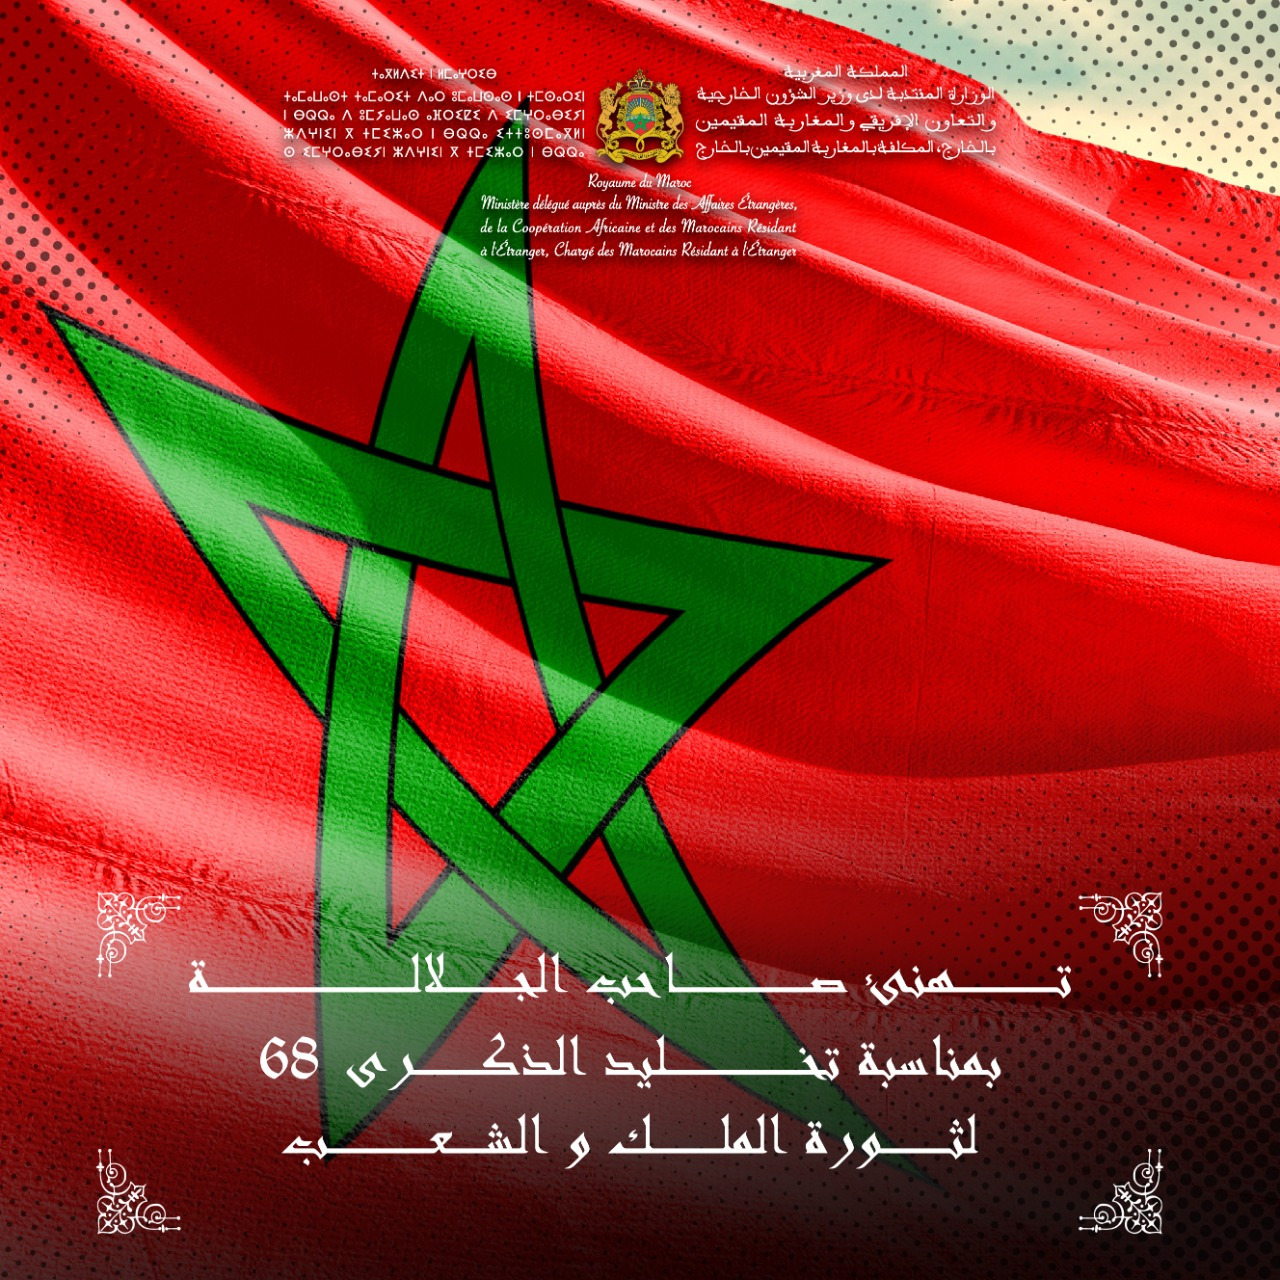 The Delegate Ministry in charge of Moroccans Living Abroad, congratulates His Majesty King Mohammed VI on the occasion of the 68th anniversary of the revolution of the King and the people